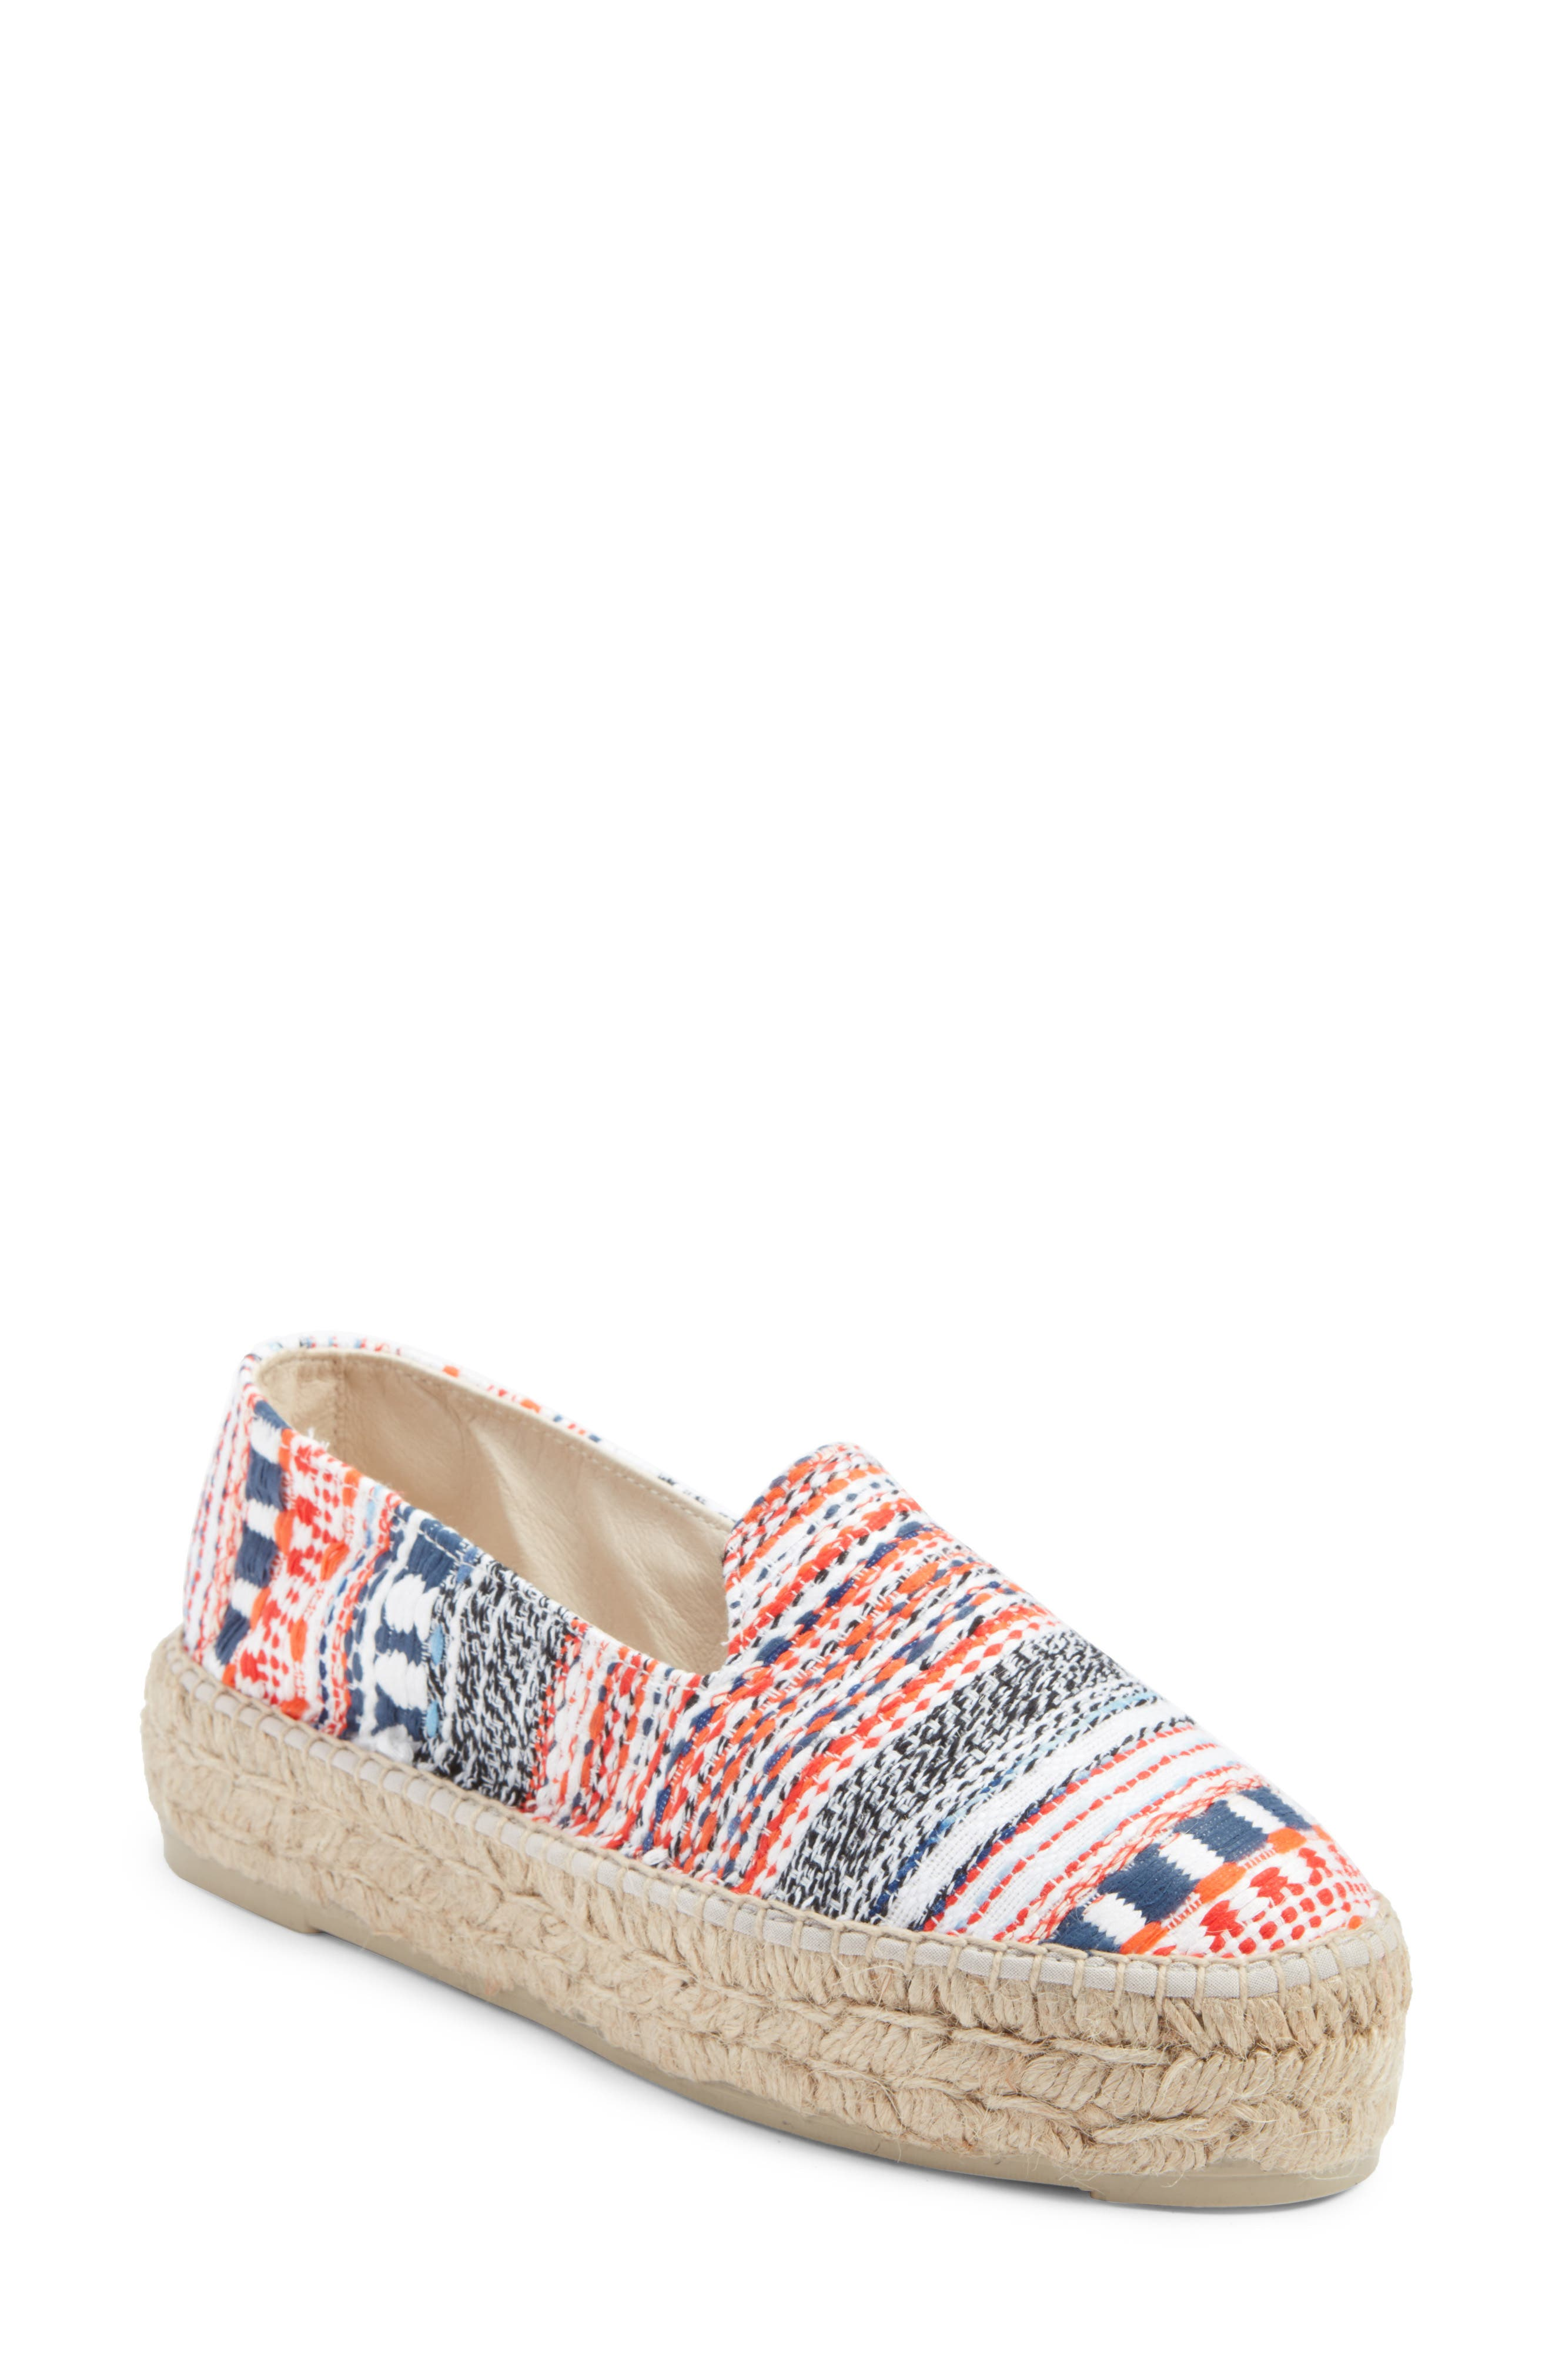 MANEBÍ Yucatan Platform Espadrille Slip-On,                             Main thumbnail 1, color,                             Red And Blue